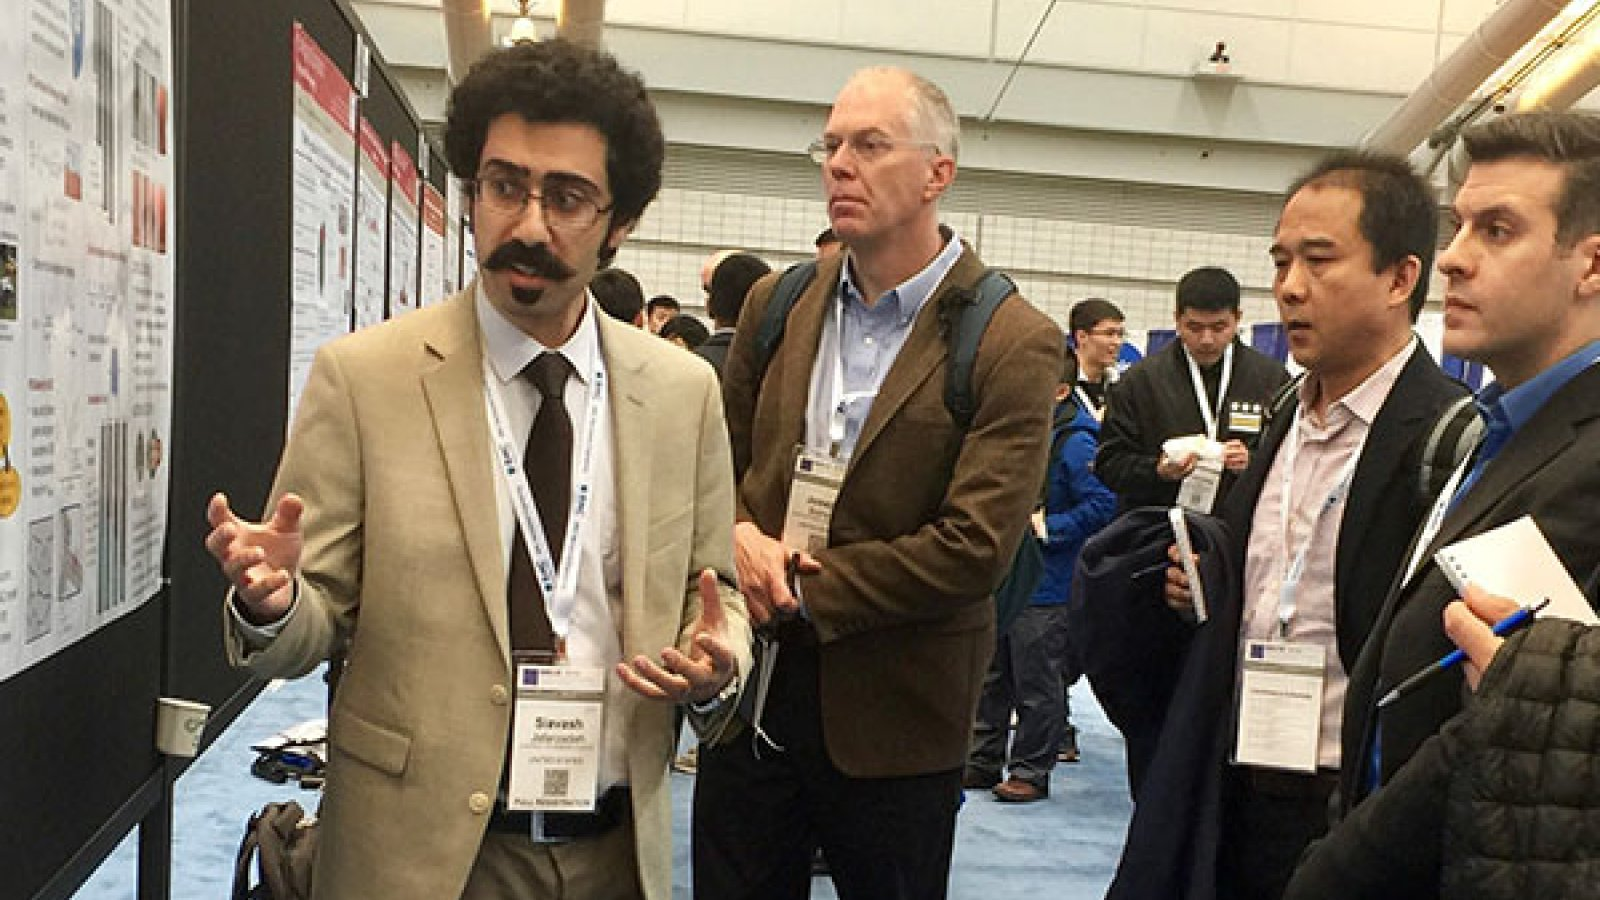 Siavash Jafarzadeh, Ph.D. student in Mechanical Engineering and Applied Mechanics, presented his research on Peridynamic Modeling of Intergranular Corrosion Damage at the American Society of Mechanical Engineers: International Mechanical Engineering Congress & Exposition in Pittsburgh, Pennsylvania, in early November.